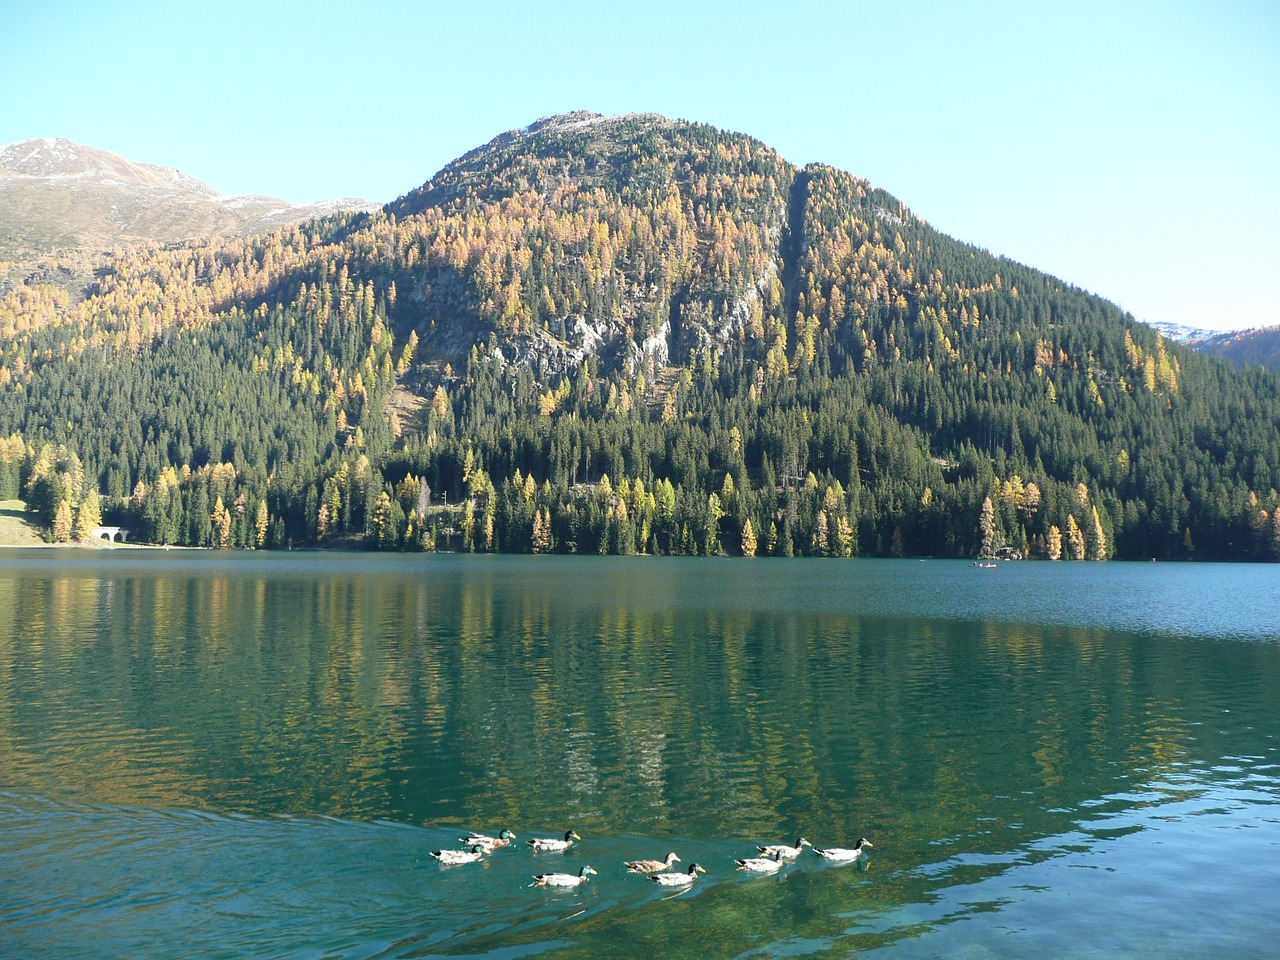 bergsee ducks lake free photo